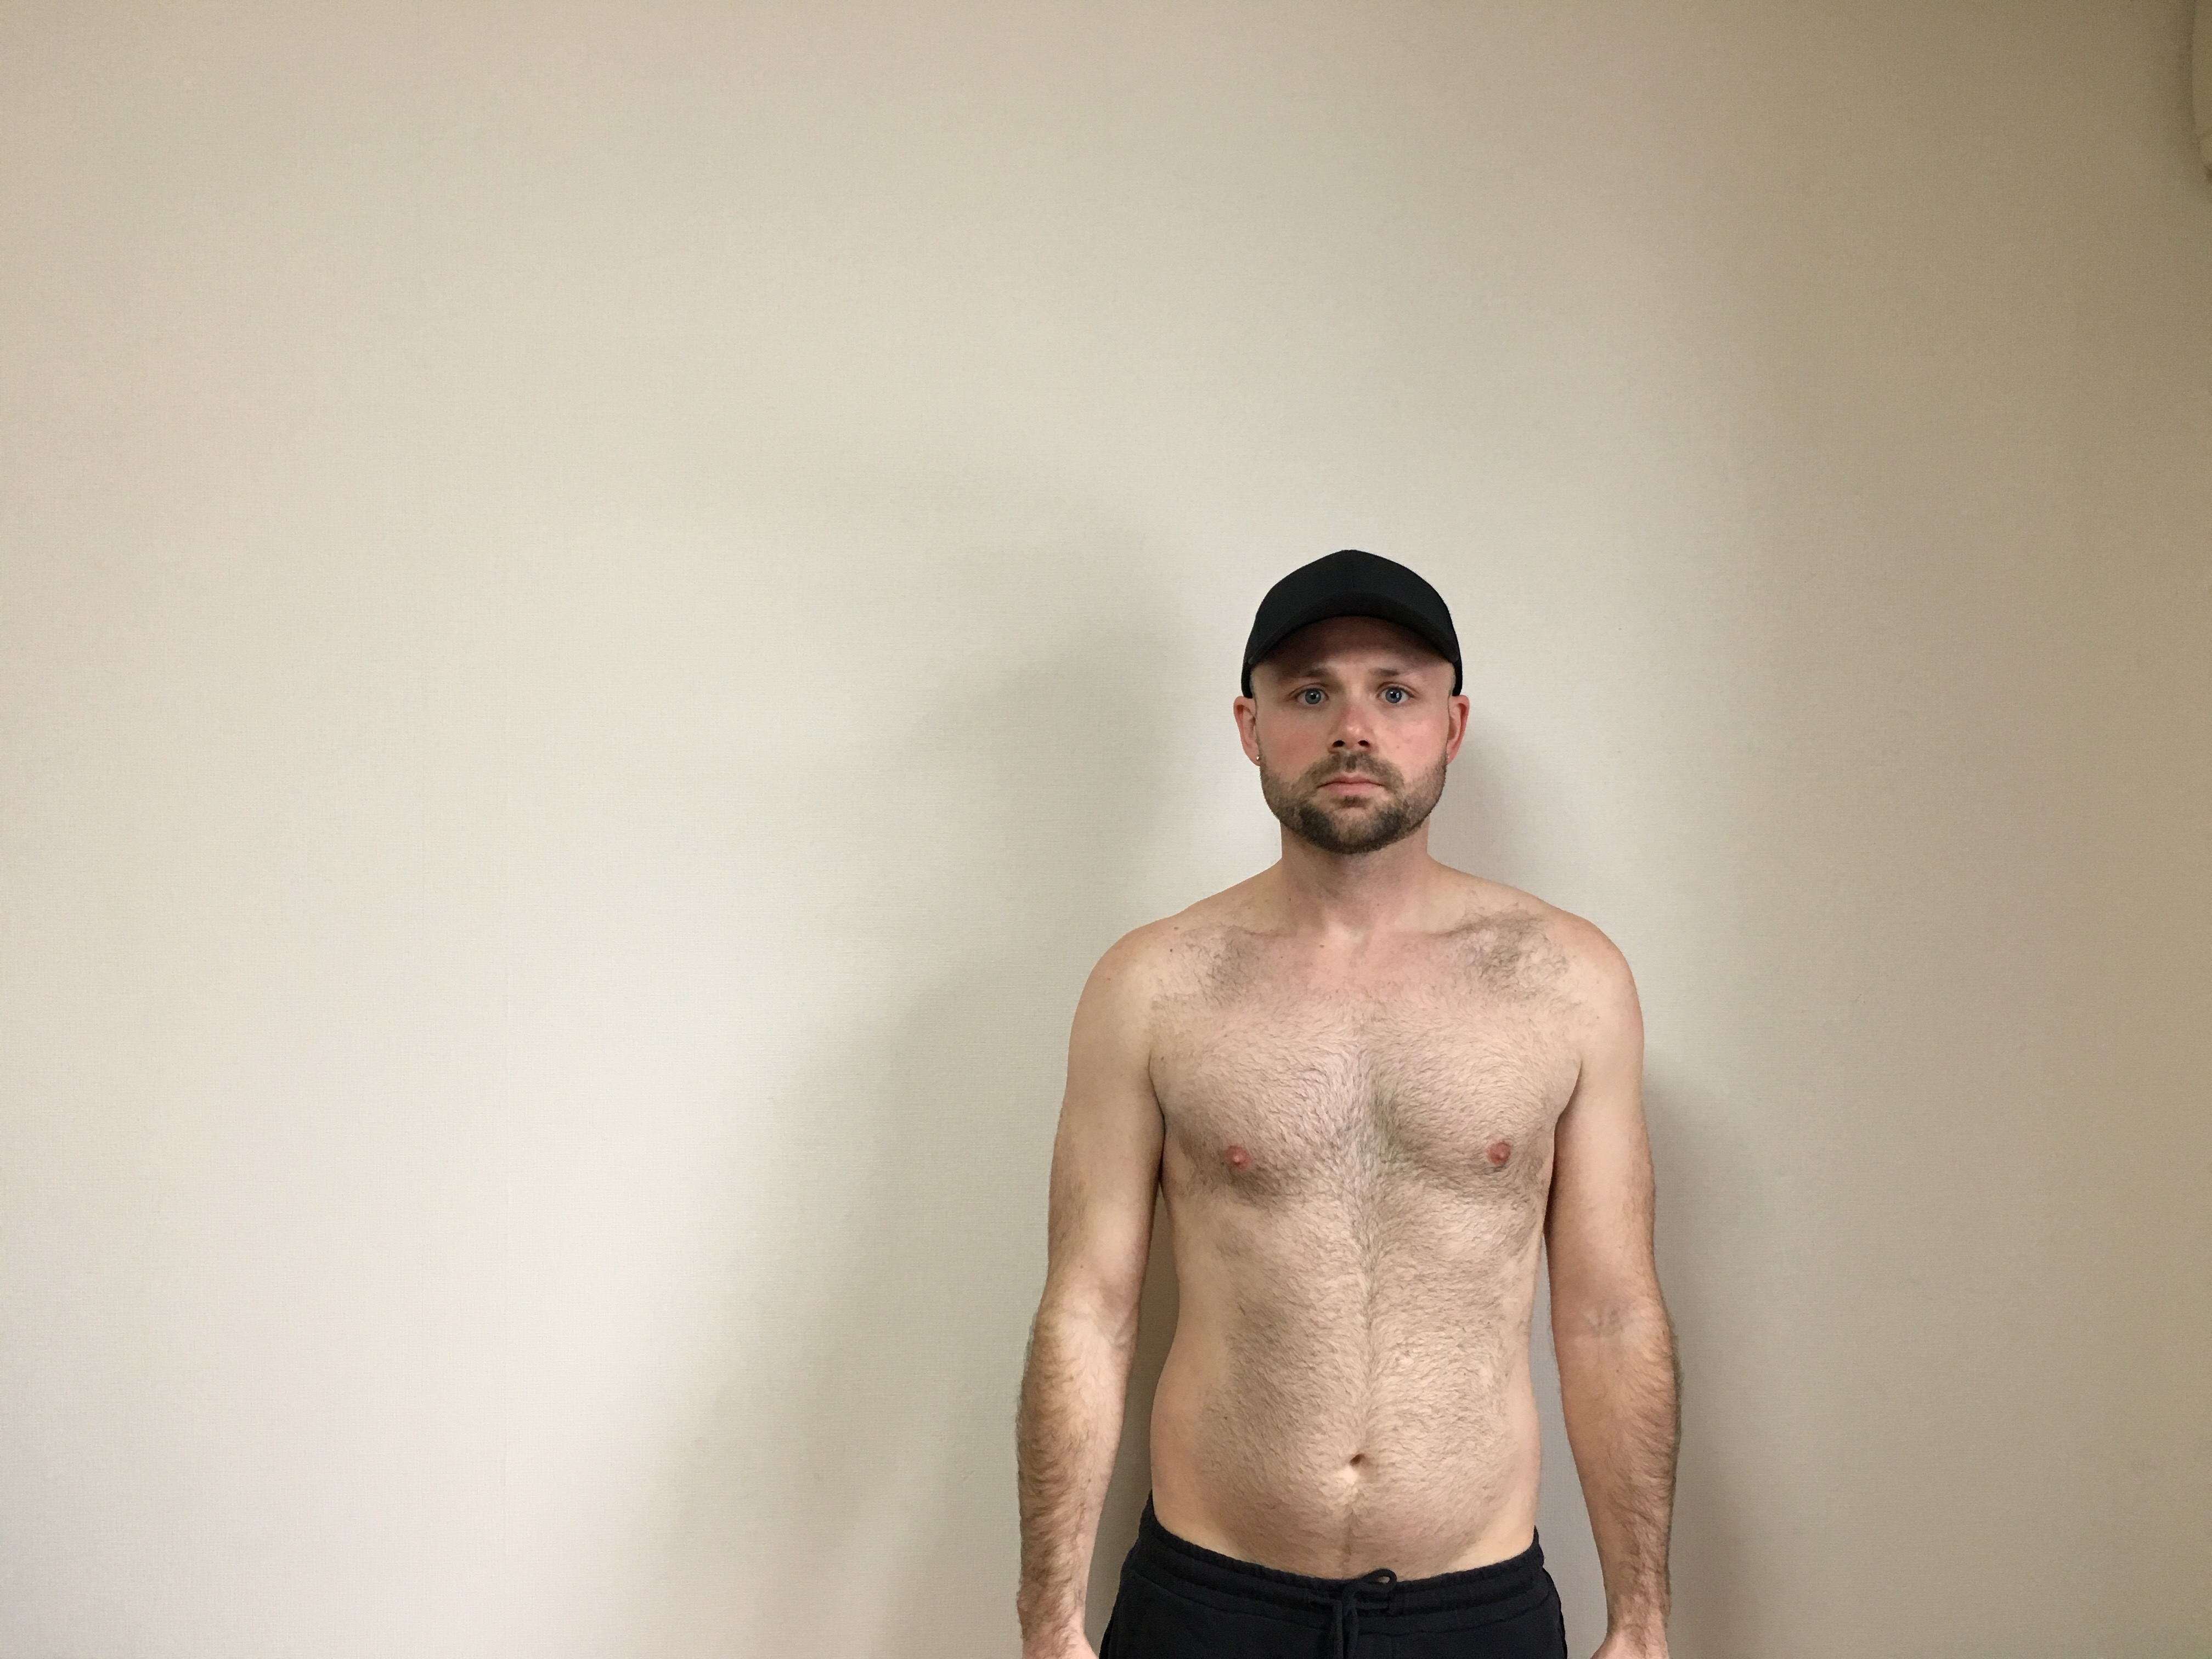 January 26 Progress Pics